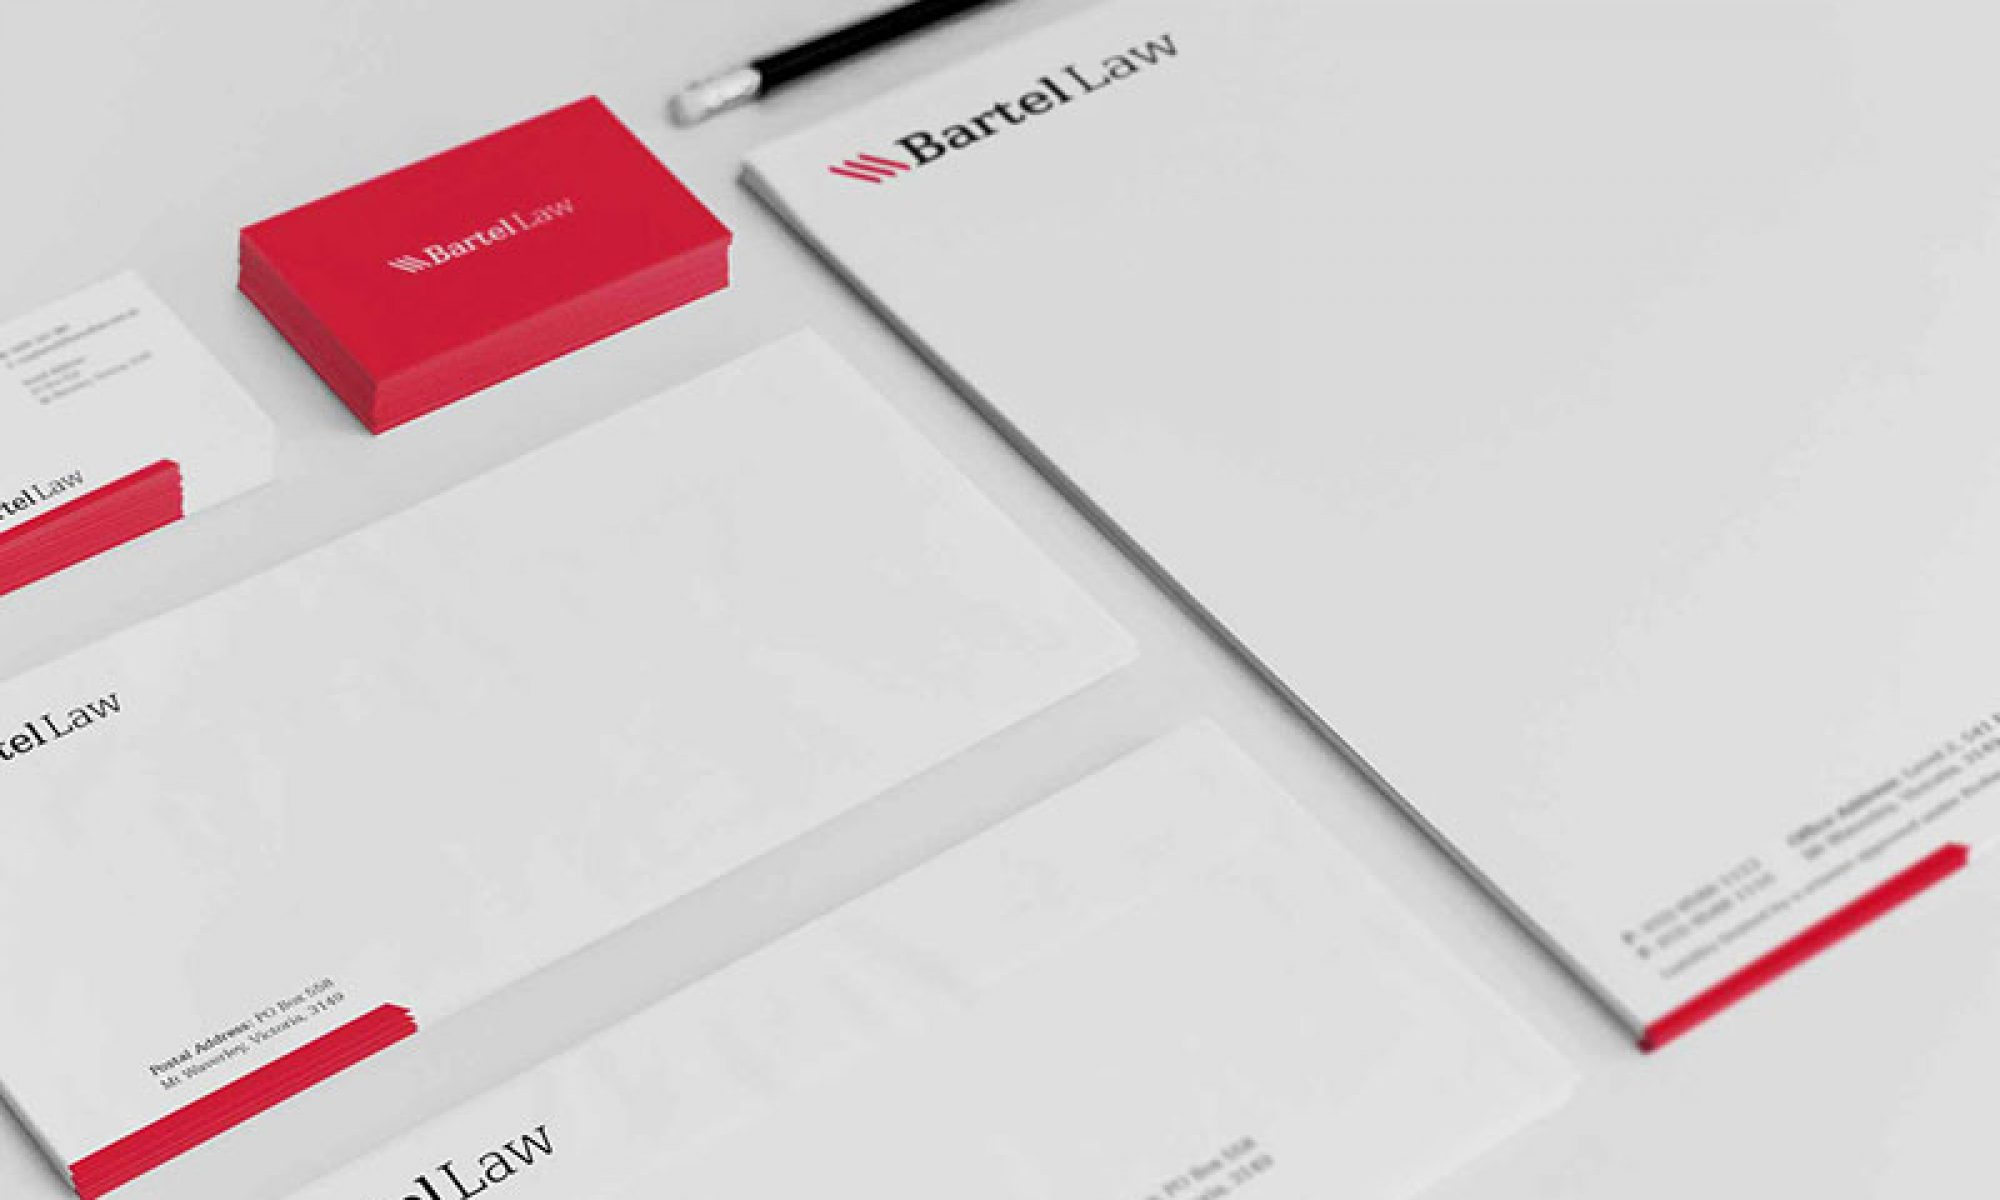 Bartel Law Branding by Logoland